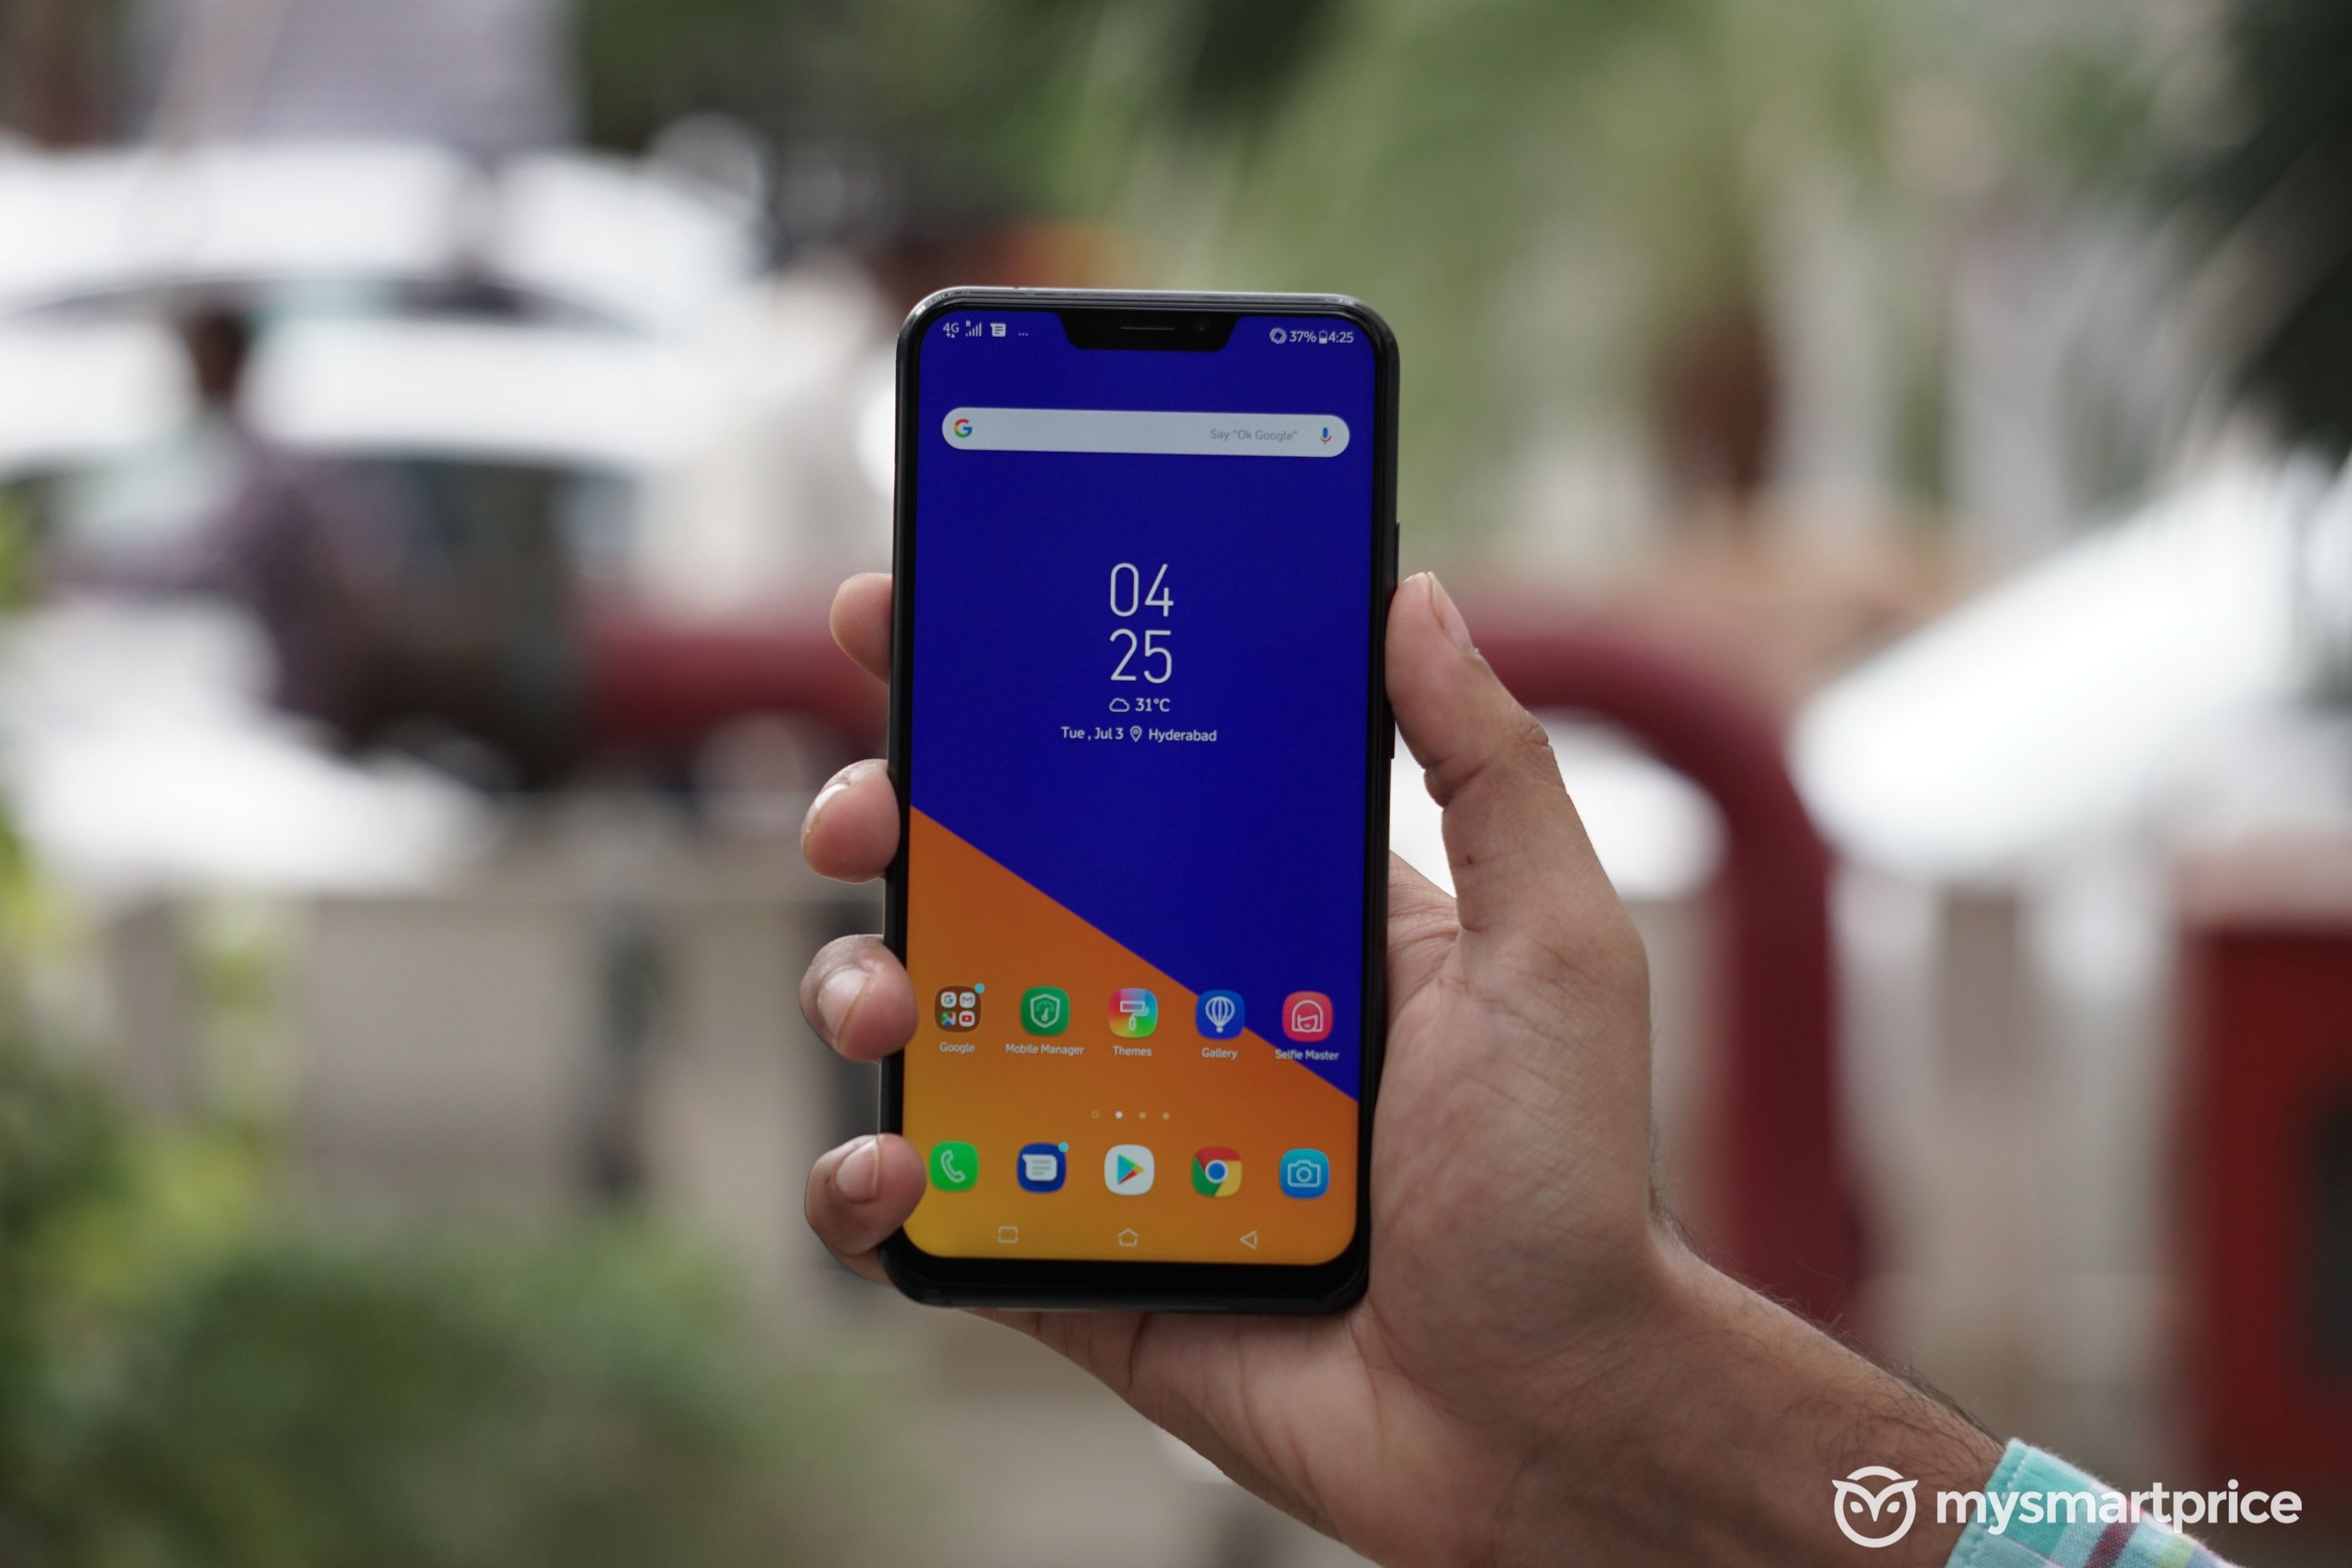 ASUS Zenfone 5Z: What we think about its design and software